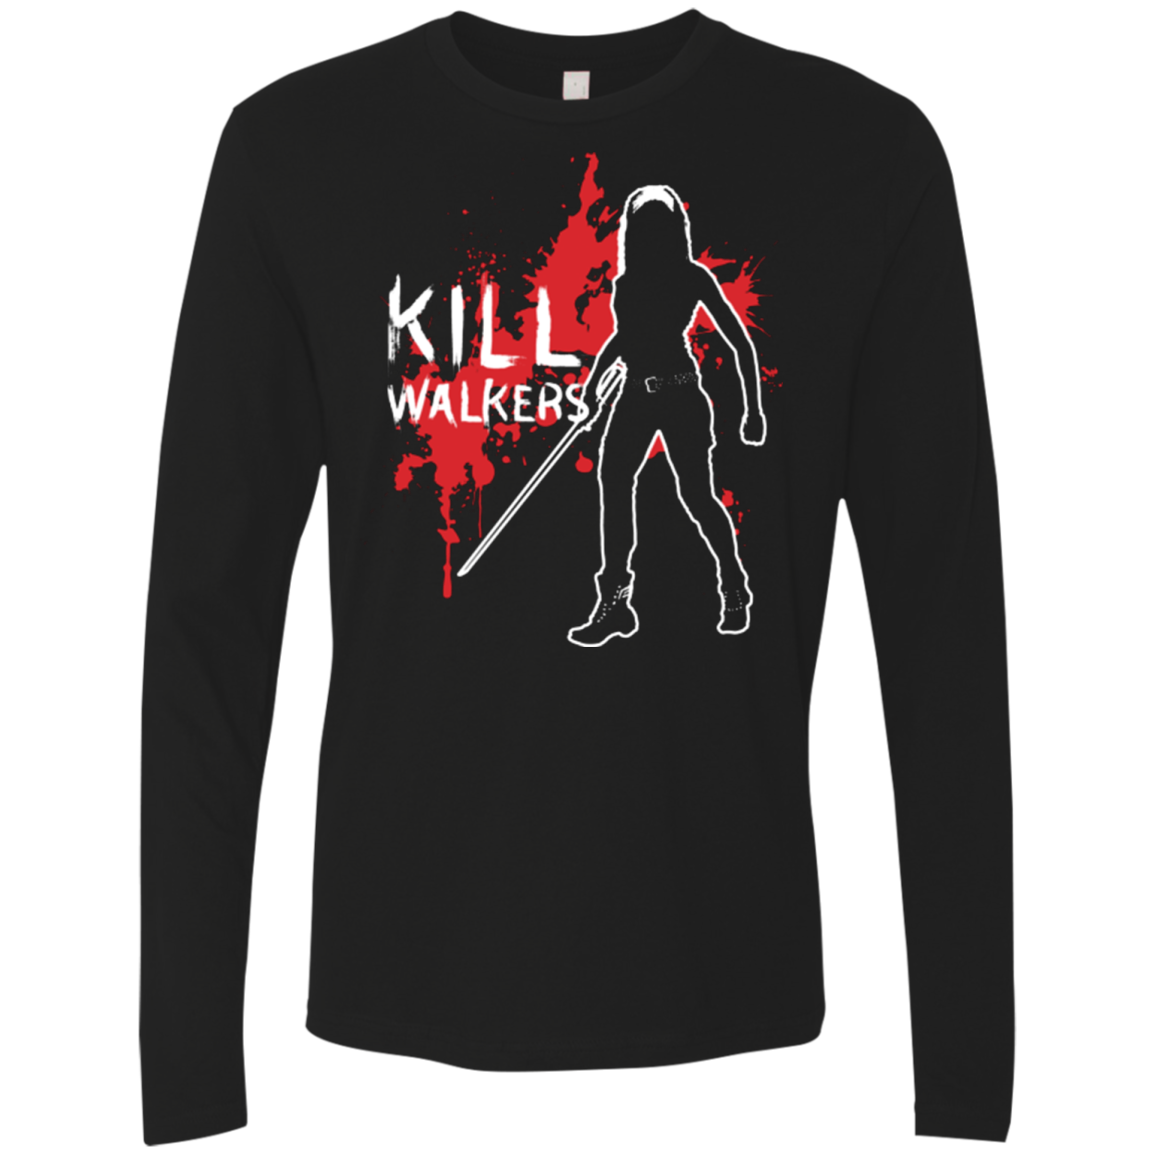 Kill Walkers (sword) Men's Premium Long Sleeve